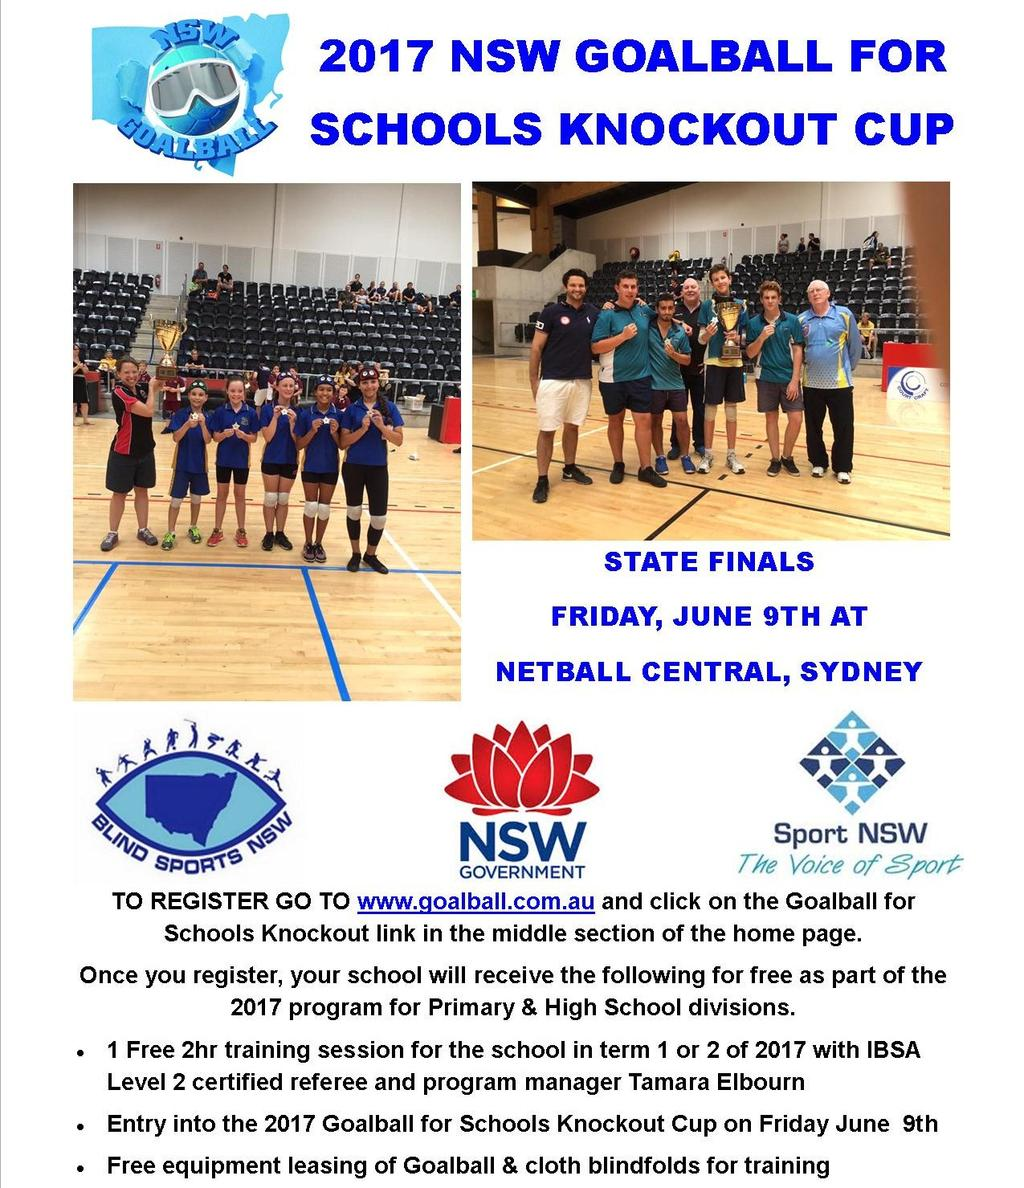 2017 NSW Goalball for Schools Knockout Cup Following the amazing success of the 2016 NSW Goalball for Schools Knockout Cup, we are back bigger and better in 2017.